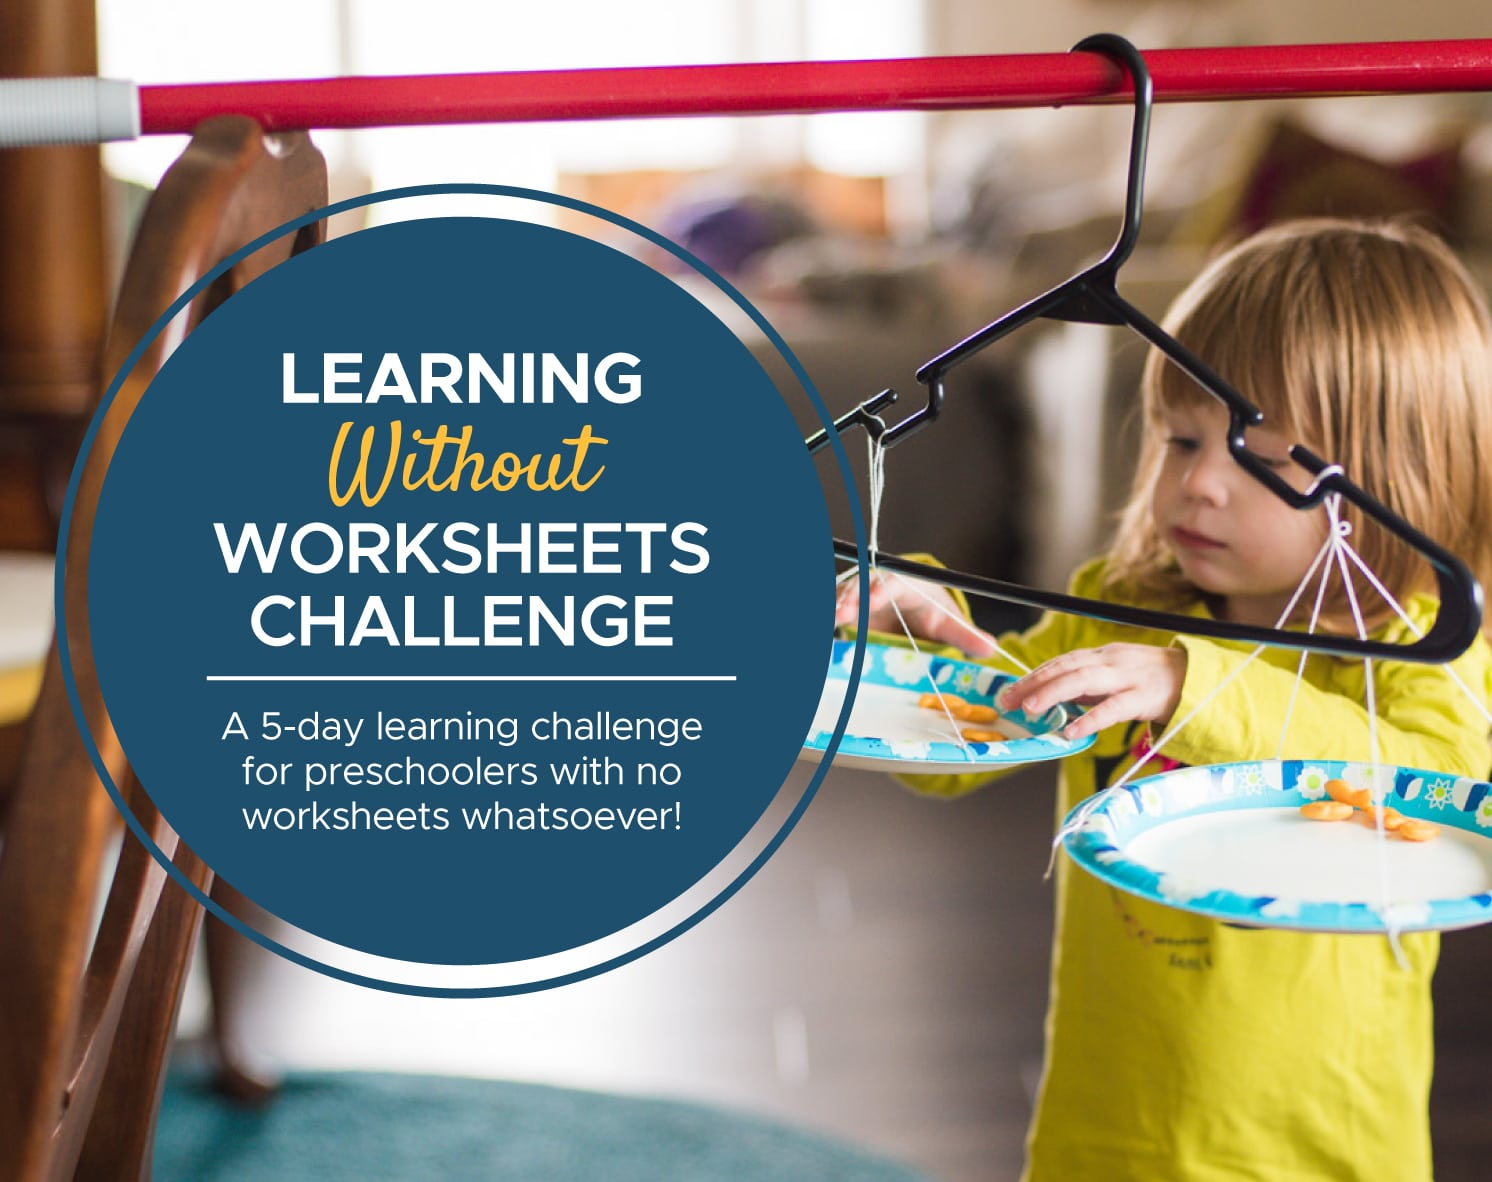 Join The Free Learning Without Worksheets Challenge